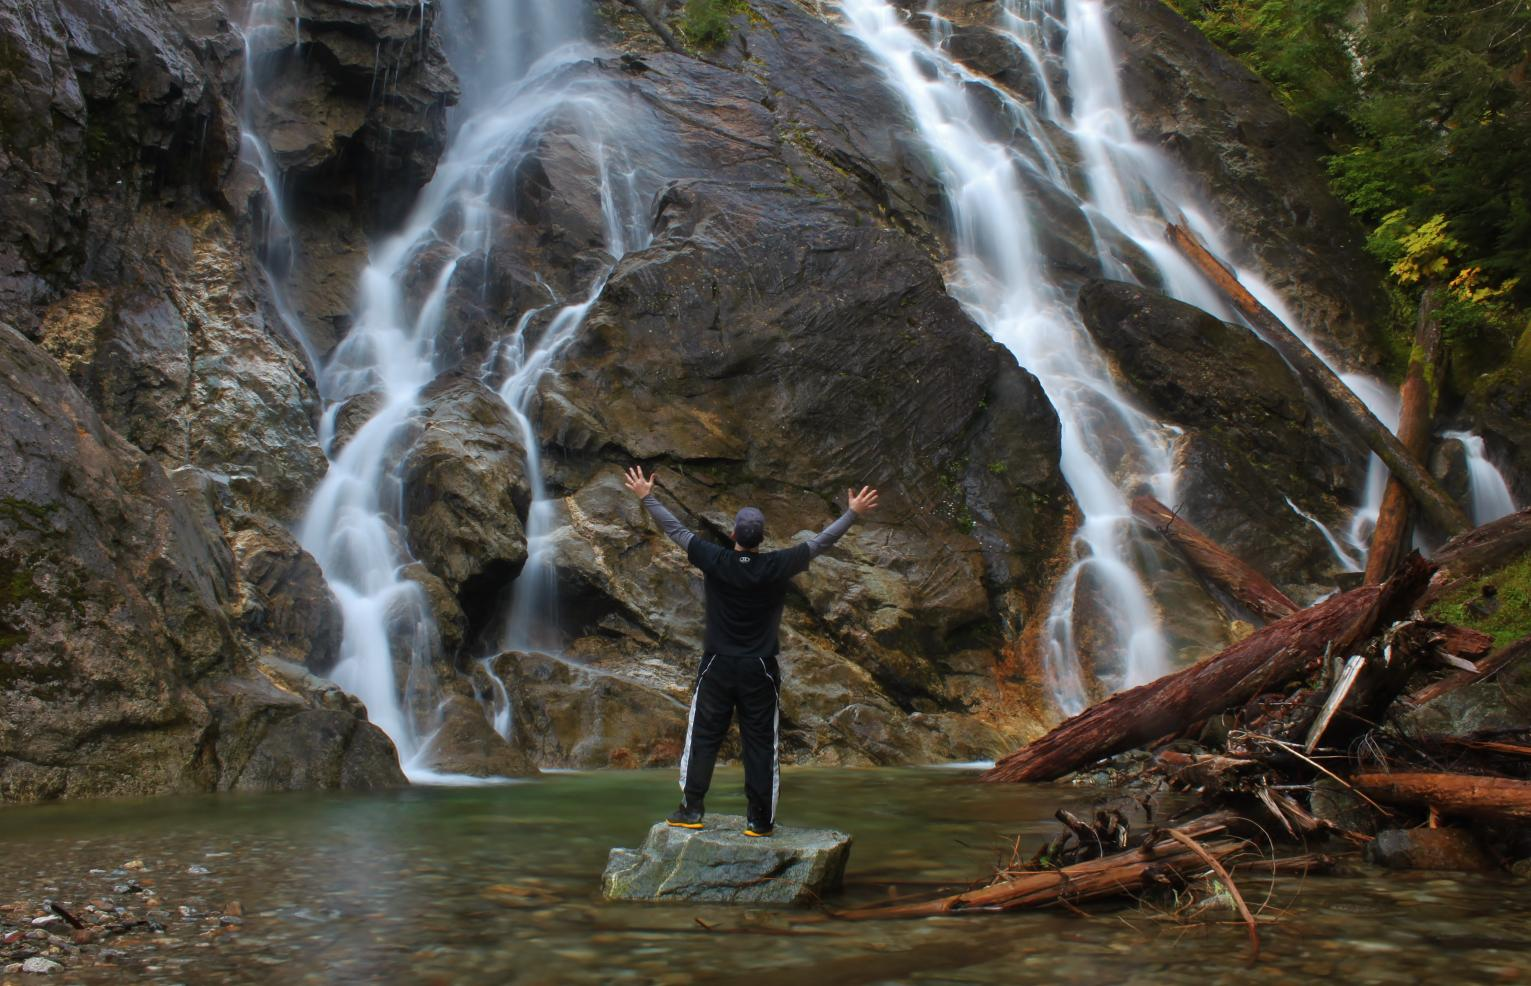 Enjoying the majesty of Lower Cougar Creek Falls